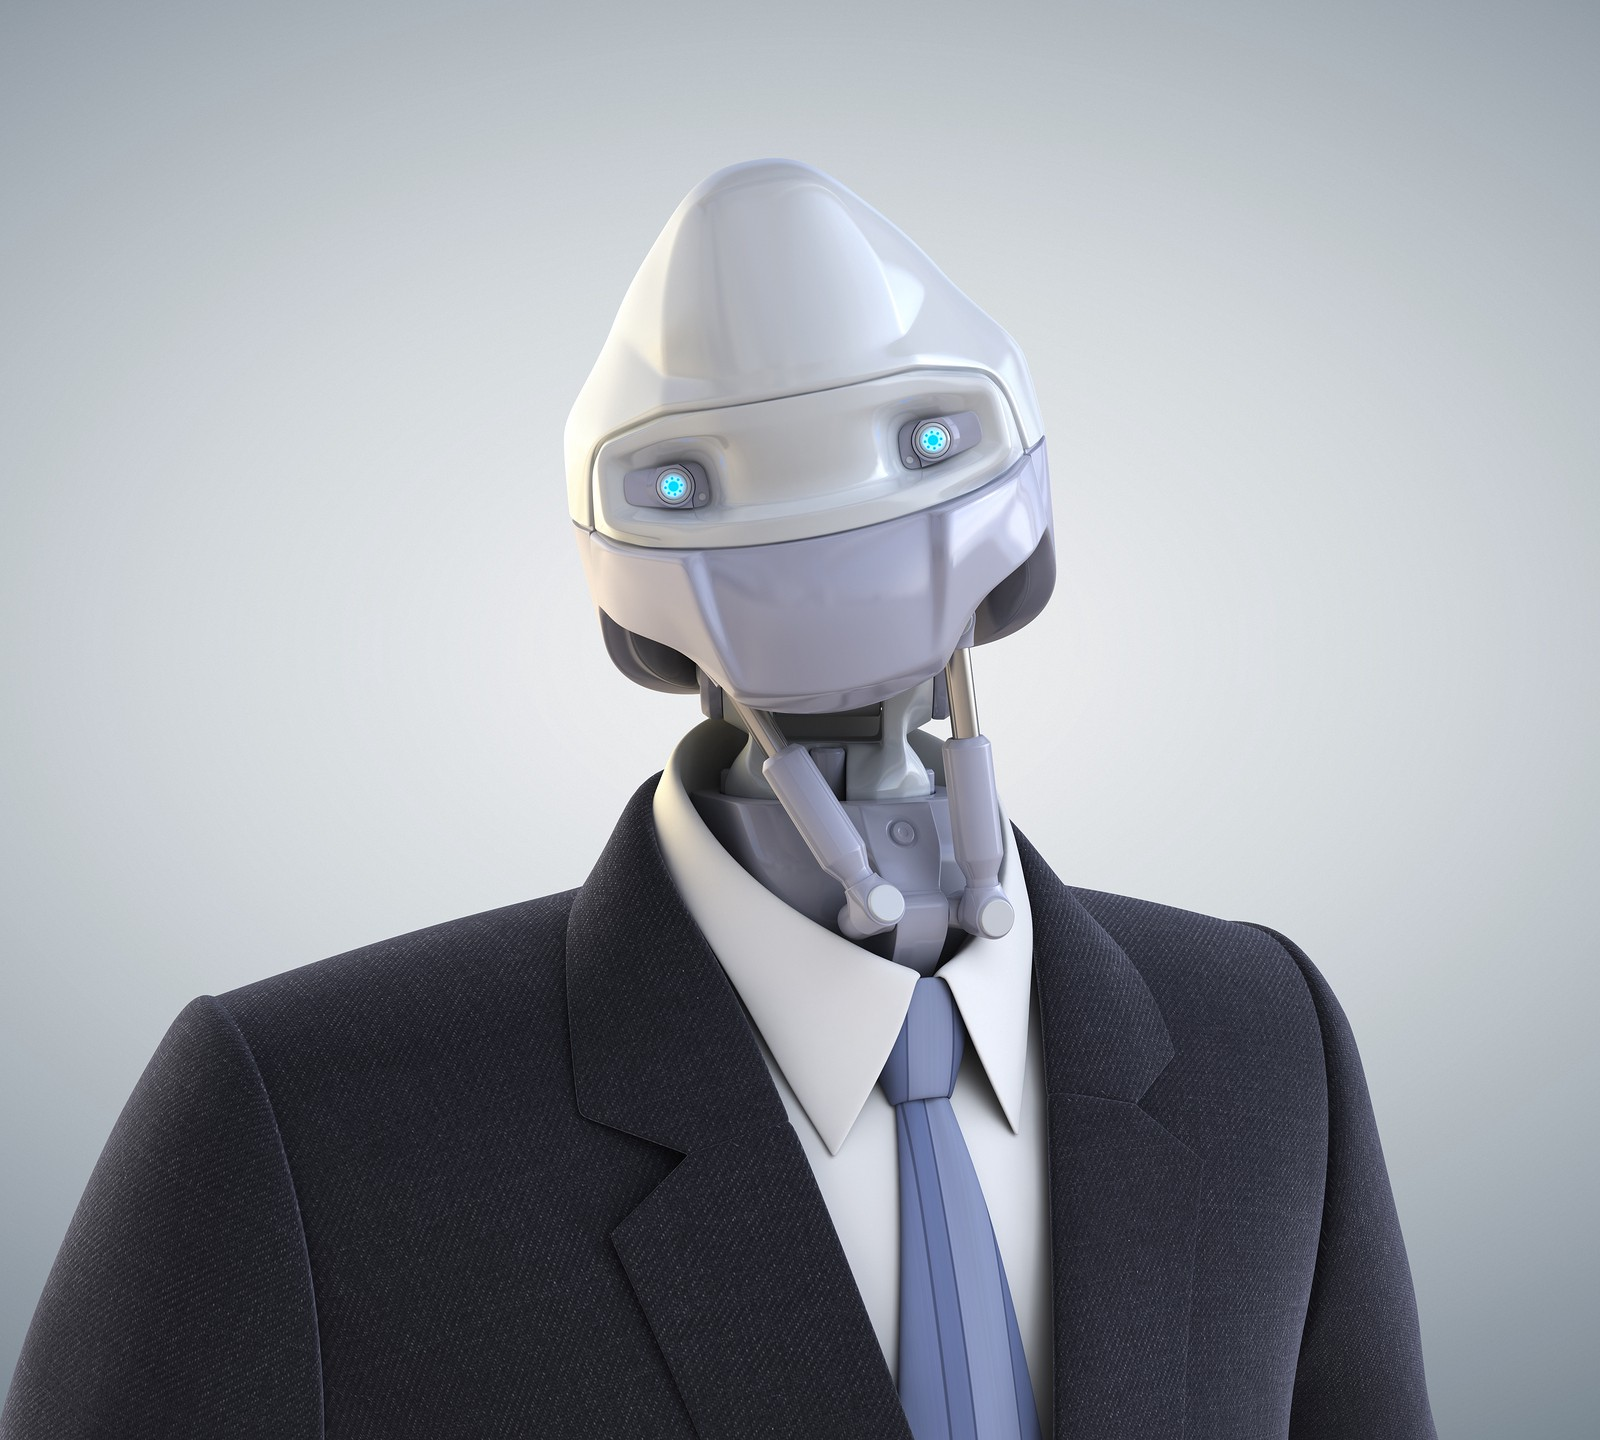 So you want robotic workers, how to keep the humans from revolting!